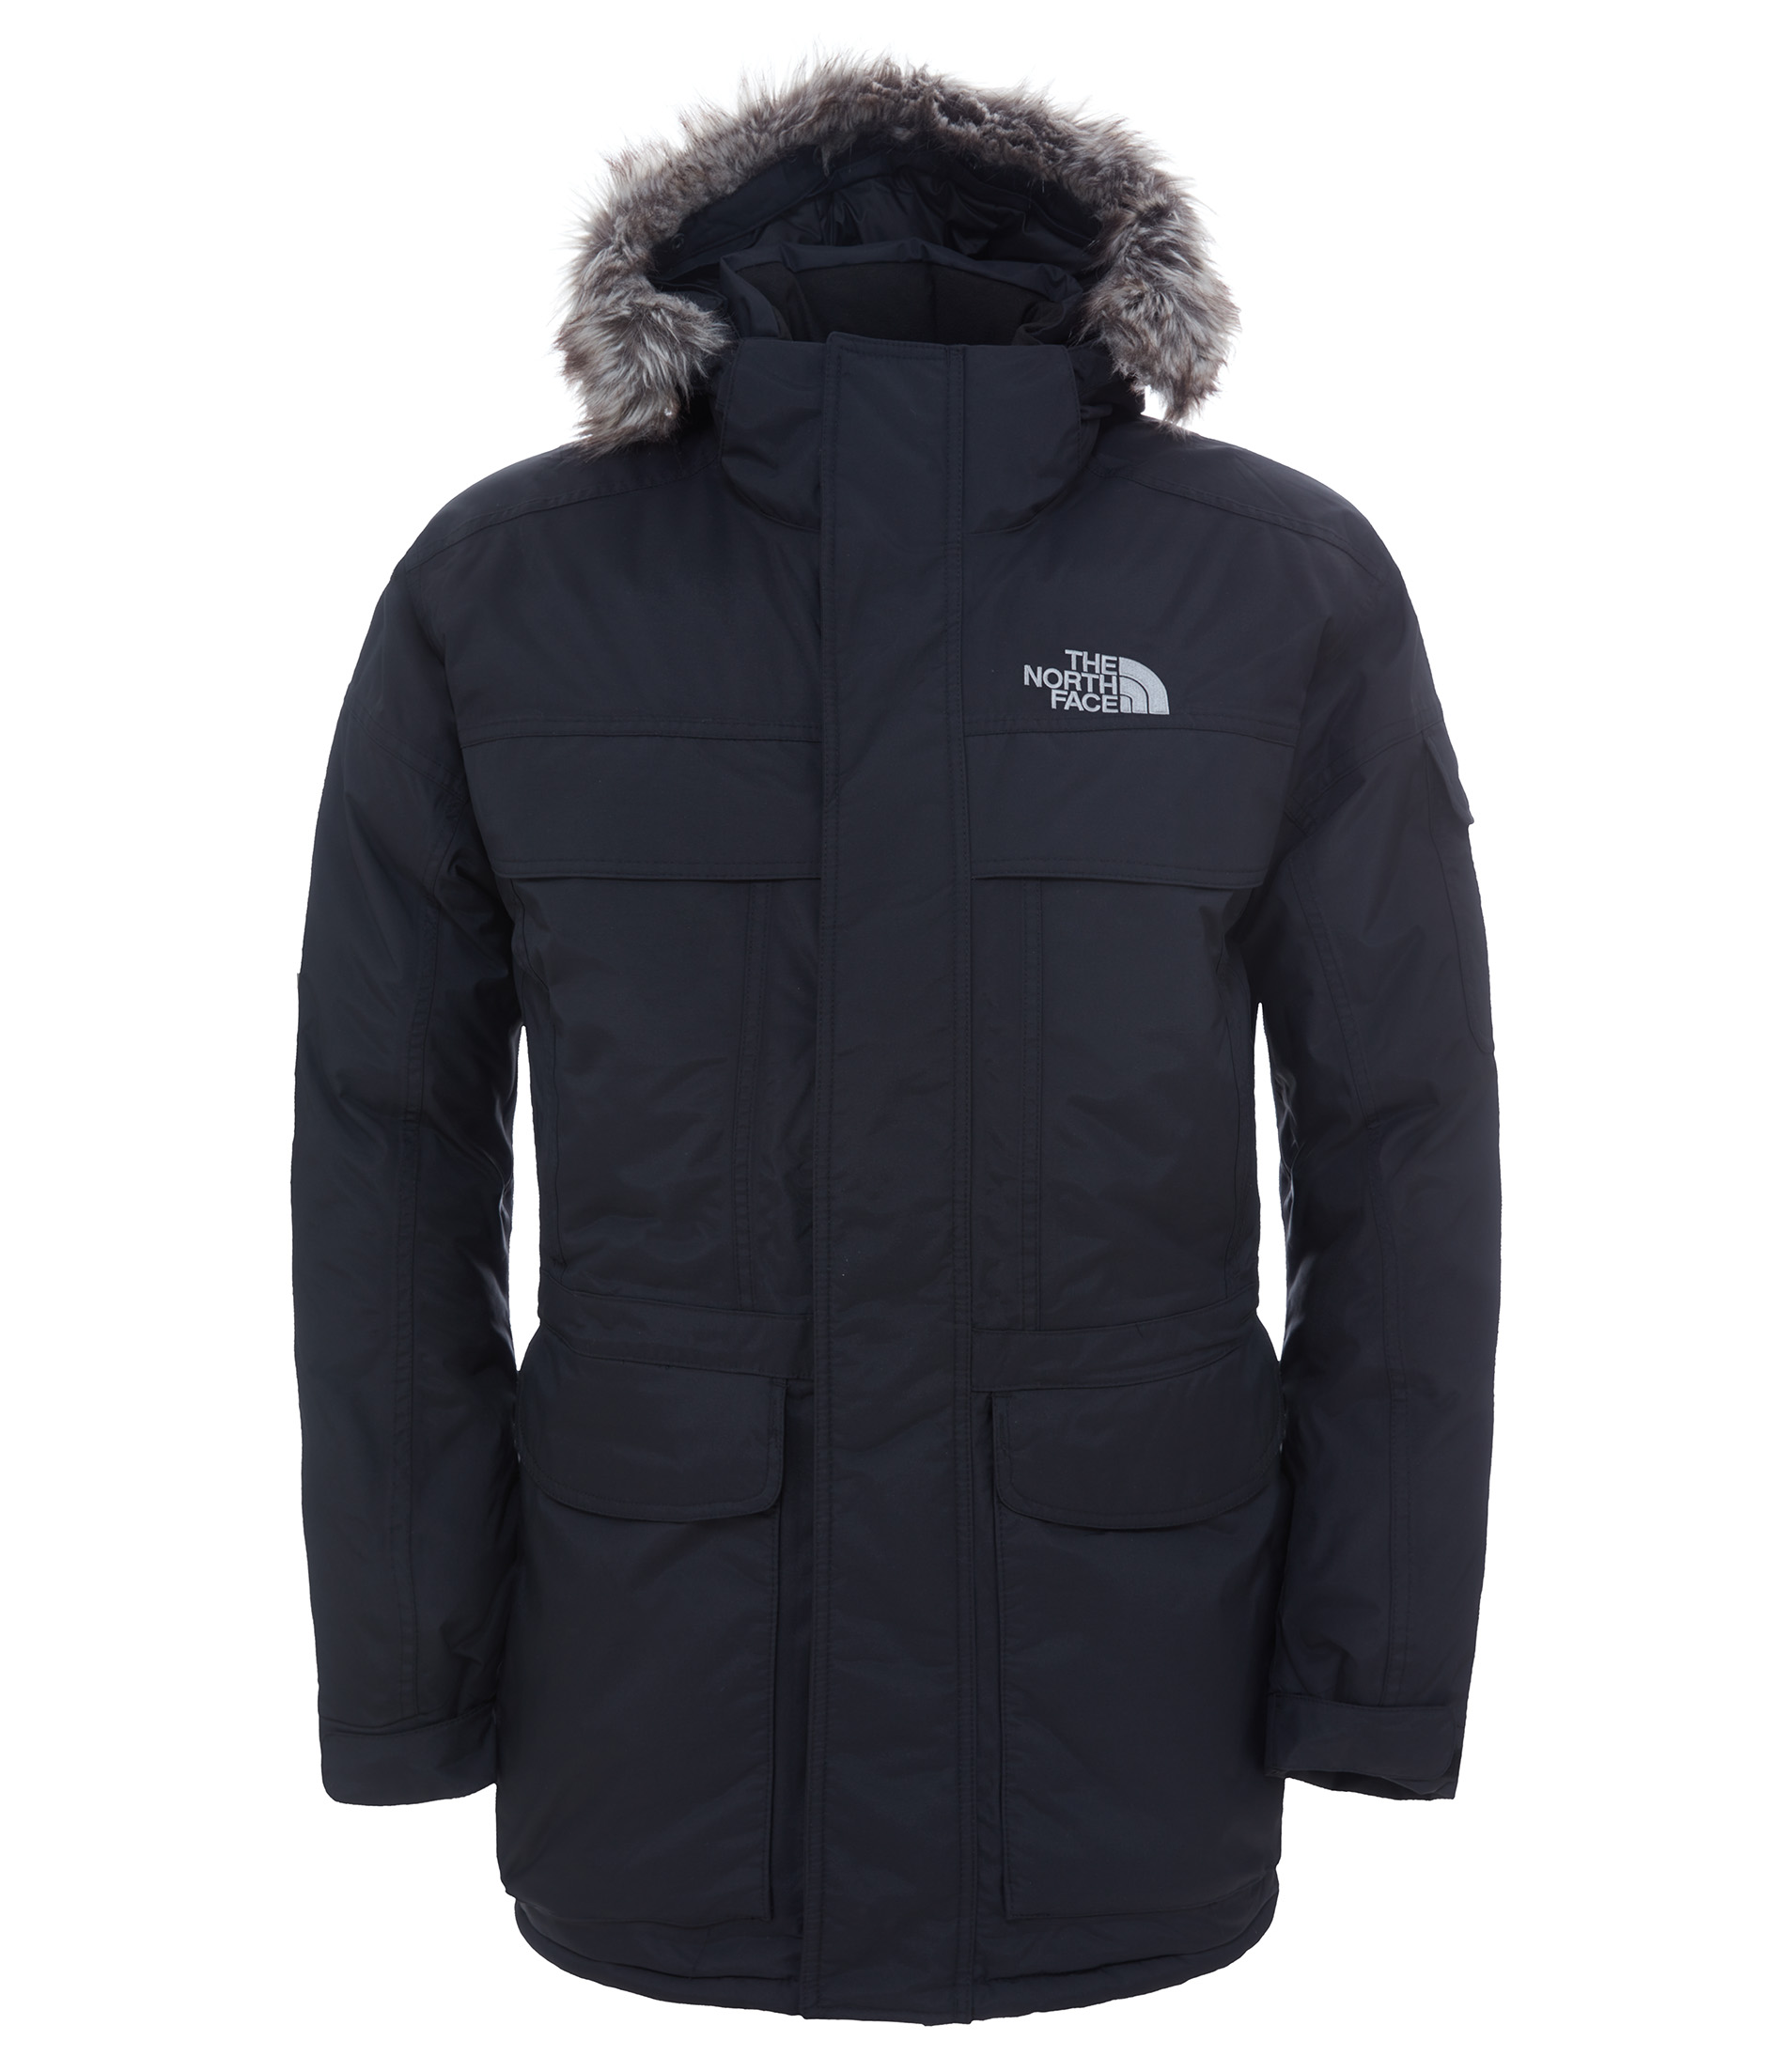 07ff4b0af The North Face McMurdo Parka Jacket Winter Outdoor Men's Black A8xzjk3 L